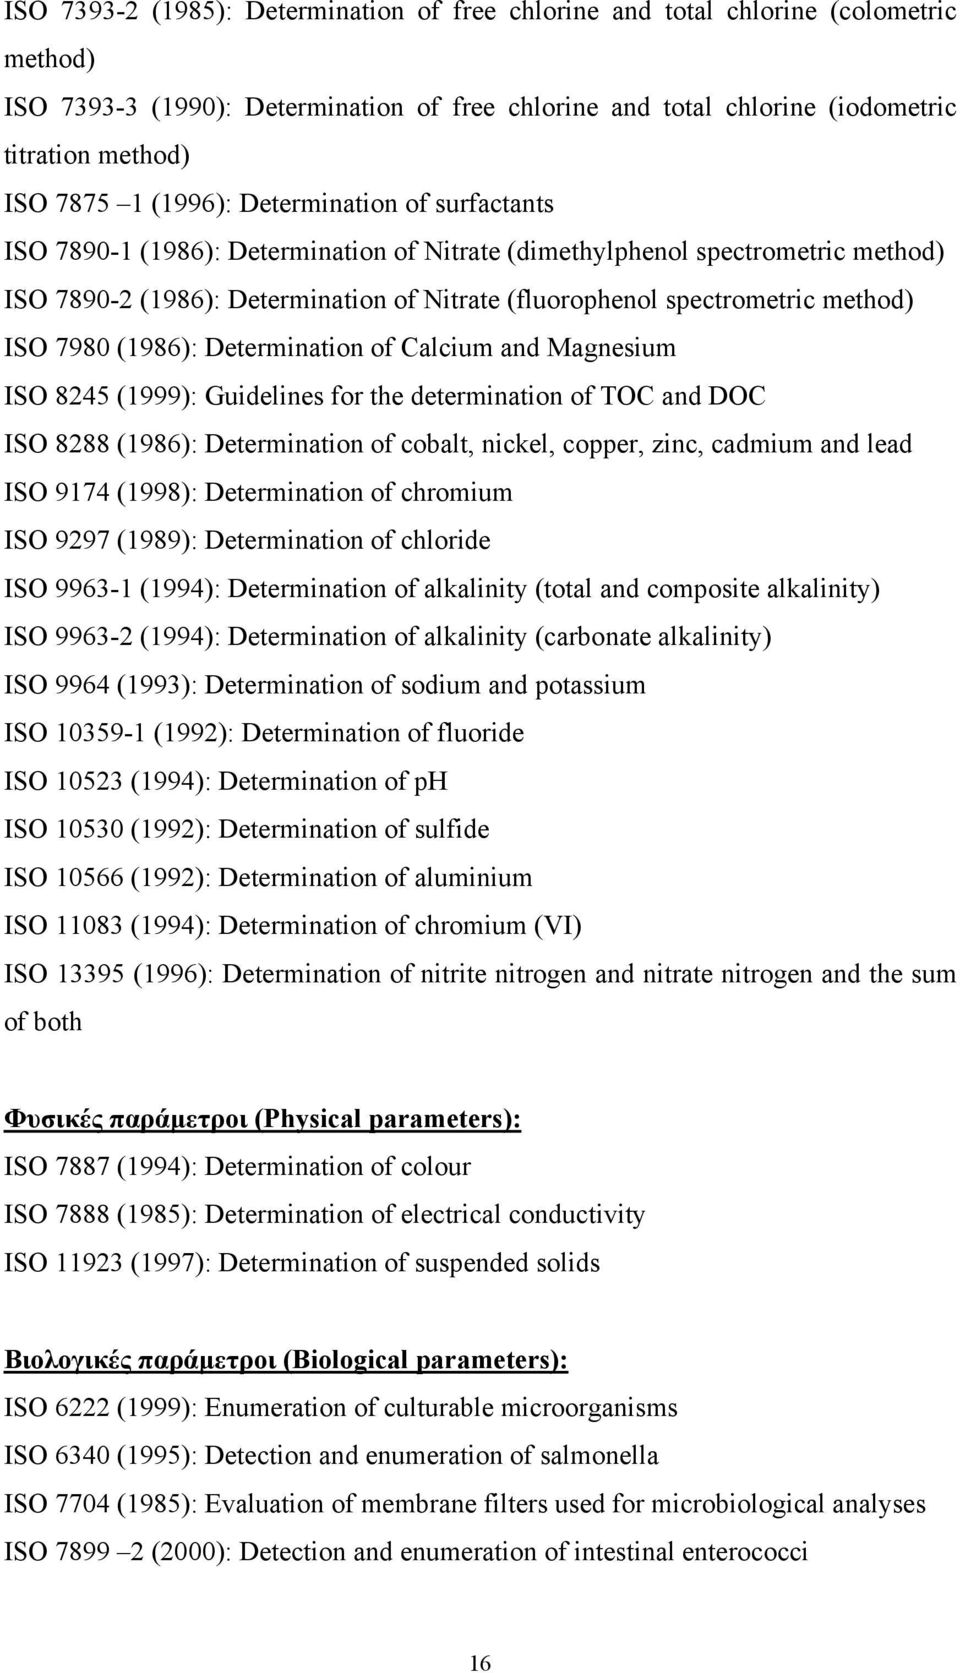 ISO 7980 (1986): Determination of Calcium and Magnesium ISO 8245 (1999): Guidelines for the determination of TOC and DOC ISO 8288 (1986): Determination of cobalt, nickel, copper, zinc, cadmium and